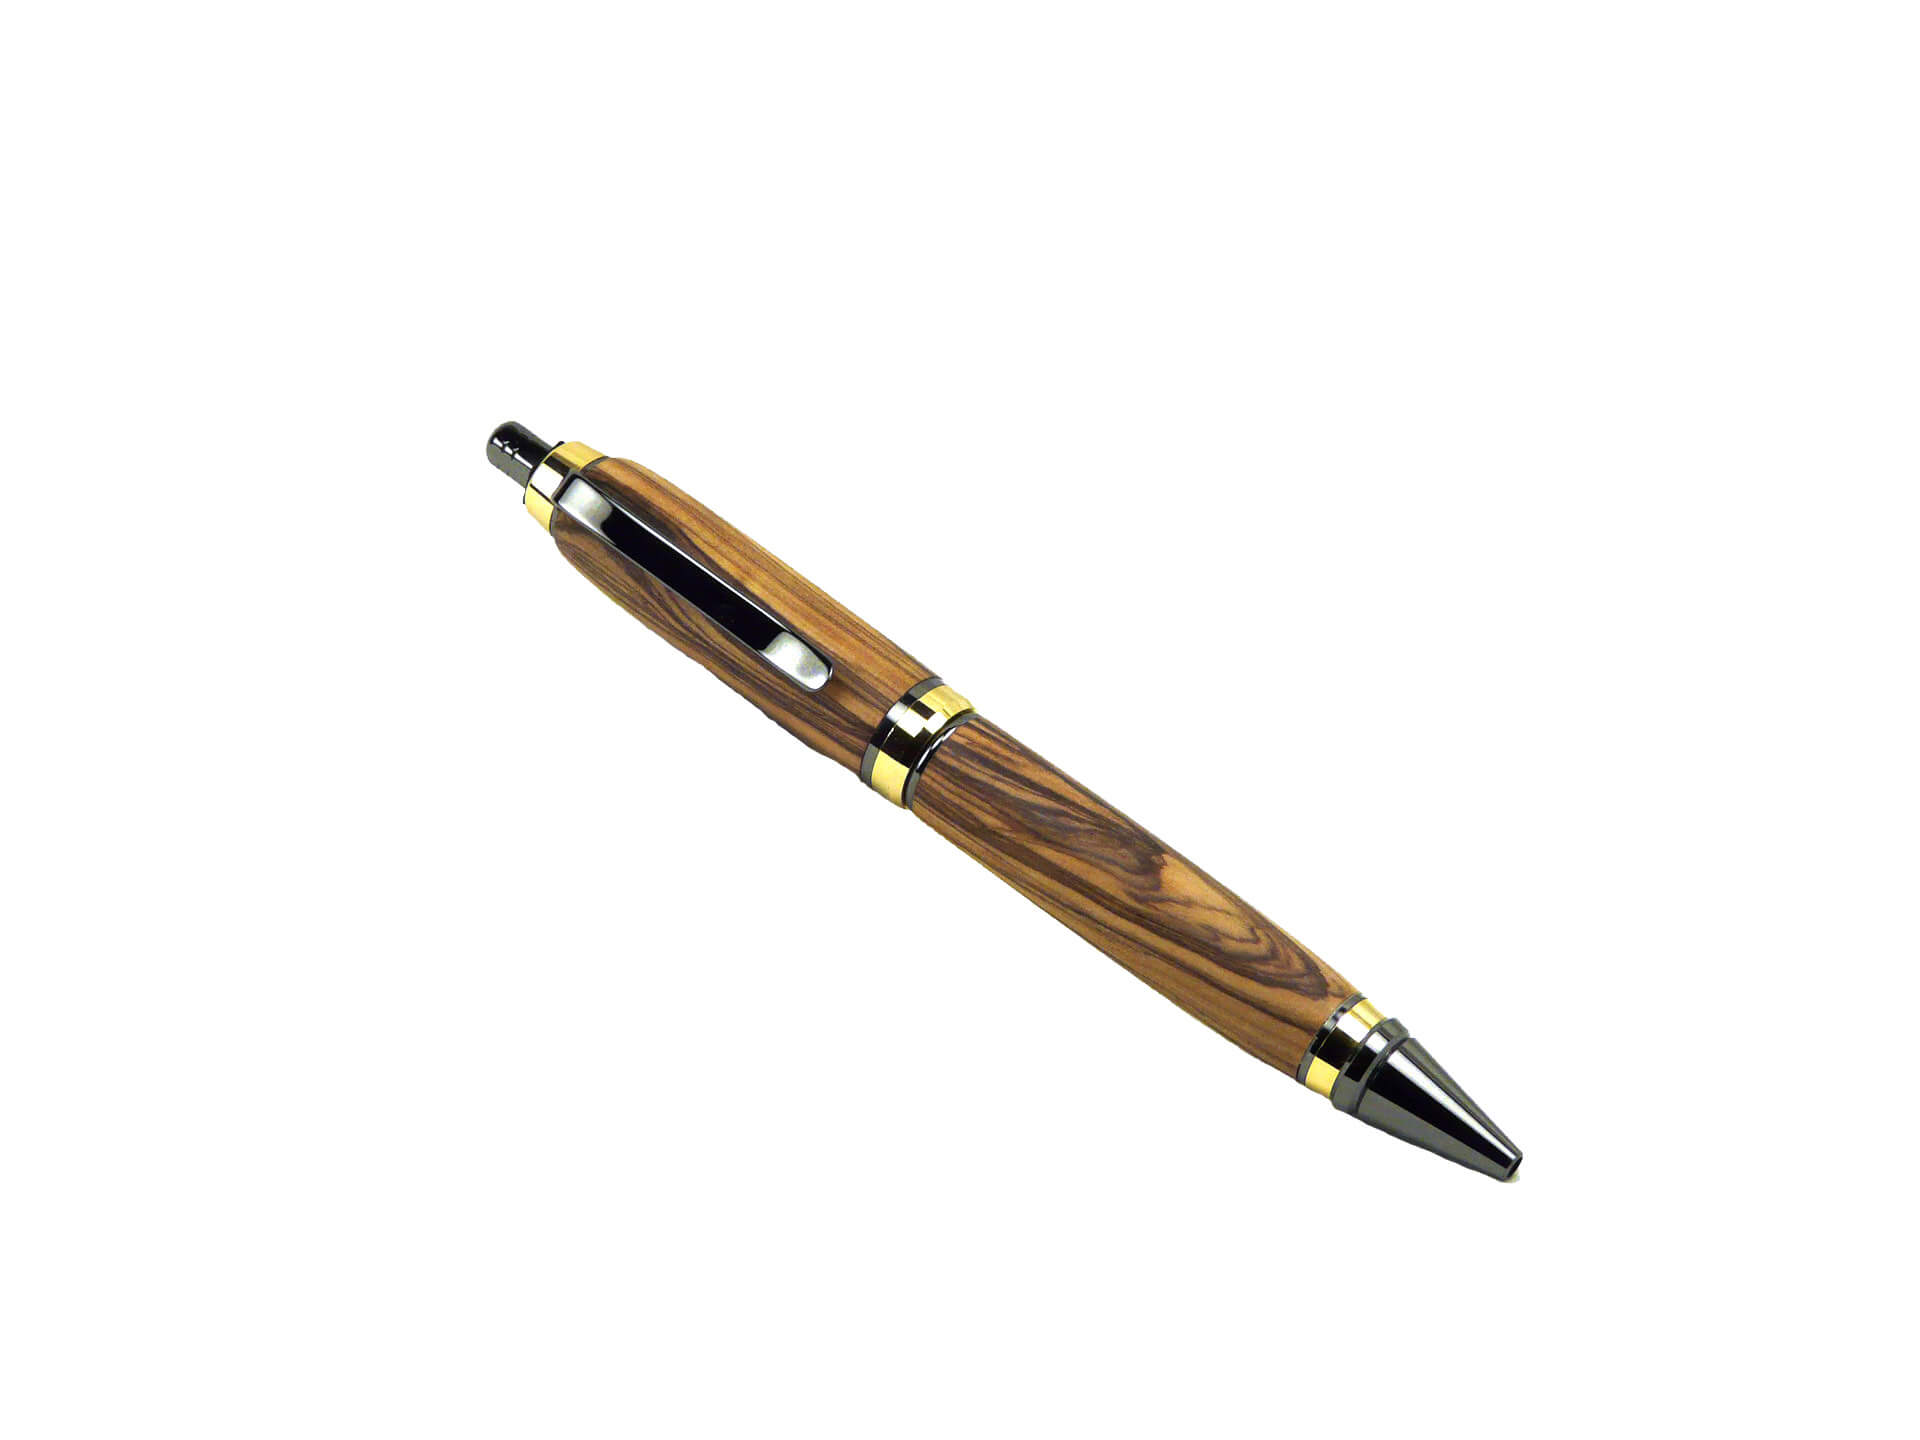 Hart Woodcrafts by Don Hart: Sierra Stylus Made From Fall Leaves, Acrylic, handmade pens, wooden pens custom, cigar click pen, Bethlehem olivewood